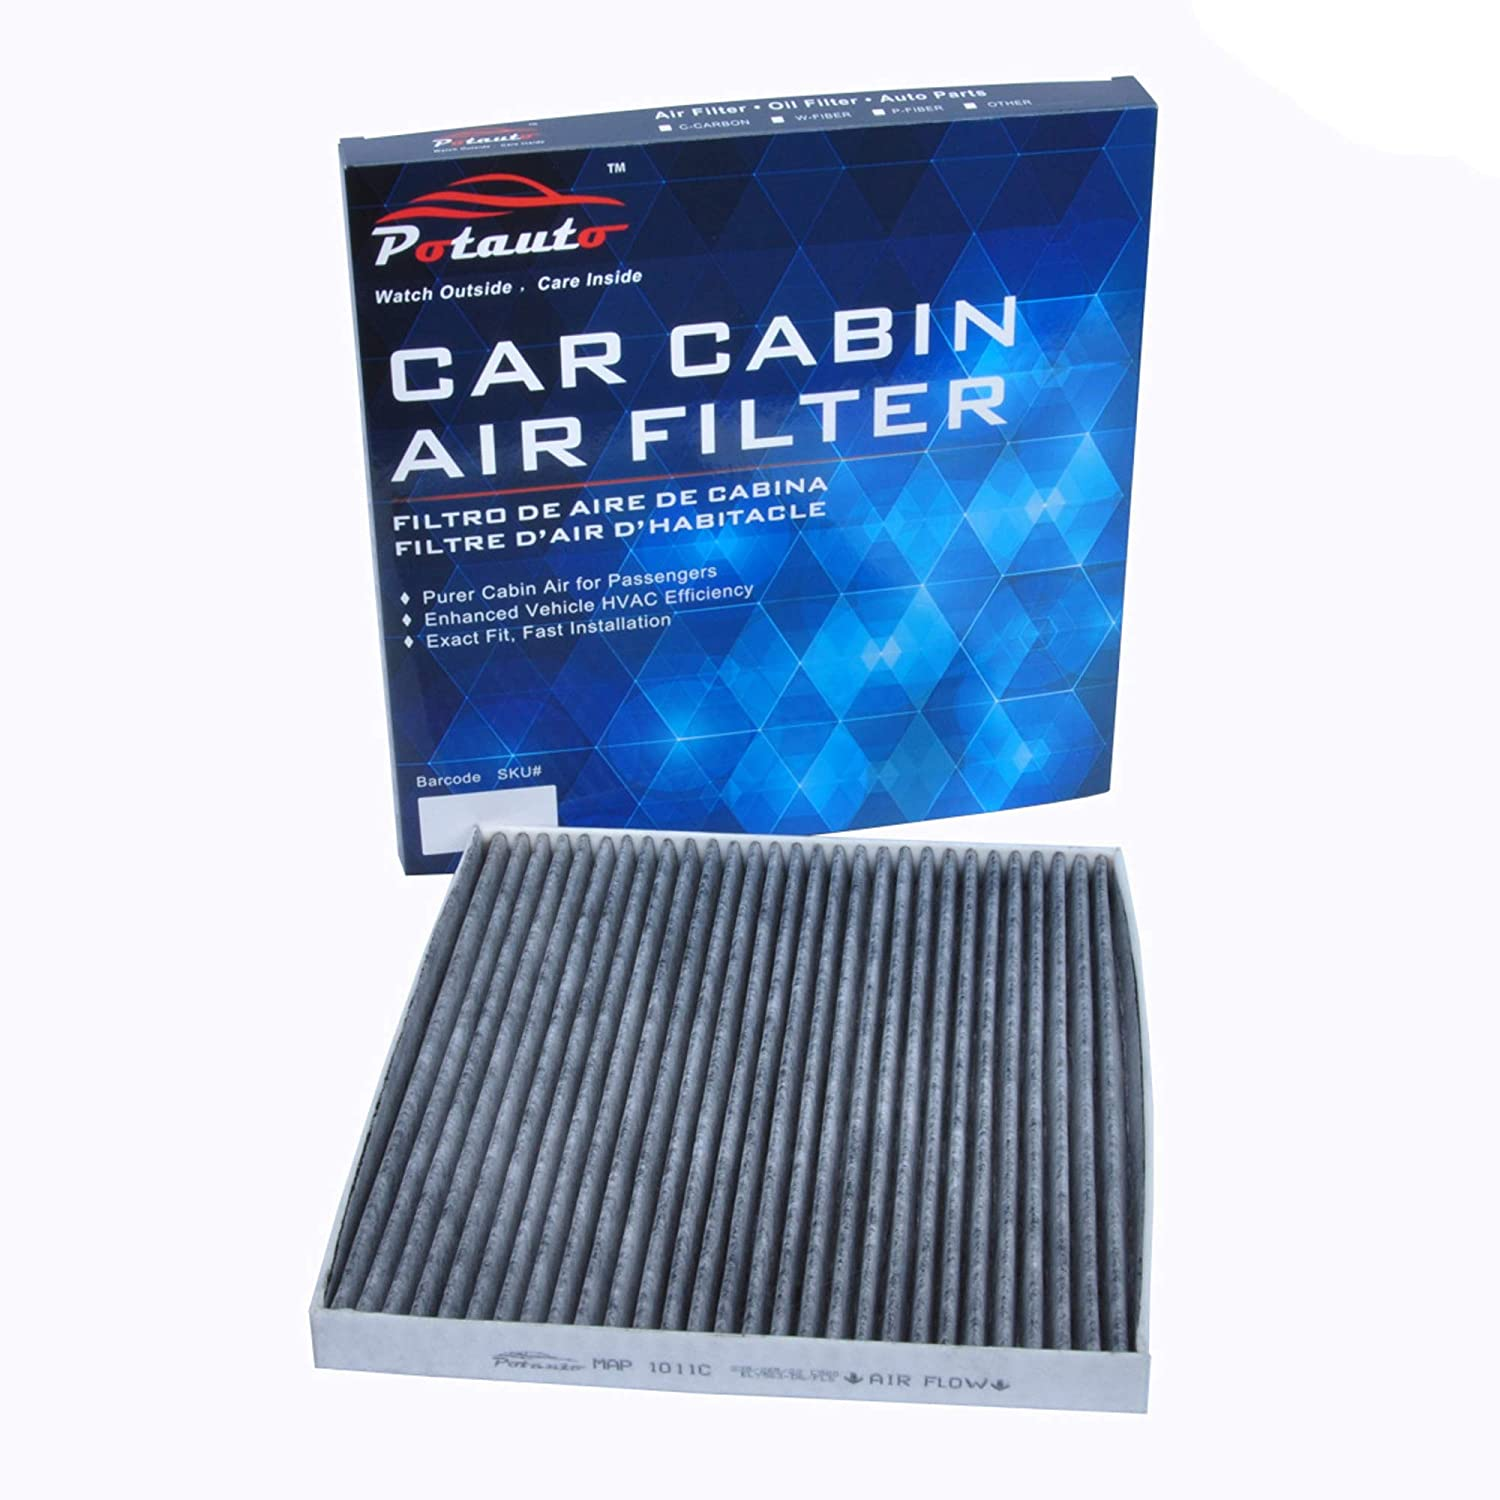 C45654 CABIN AIR FILTER FOR 2006 2007 2008 2009 CADILLAC CTS CTS-V SRX STS STS-V